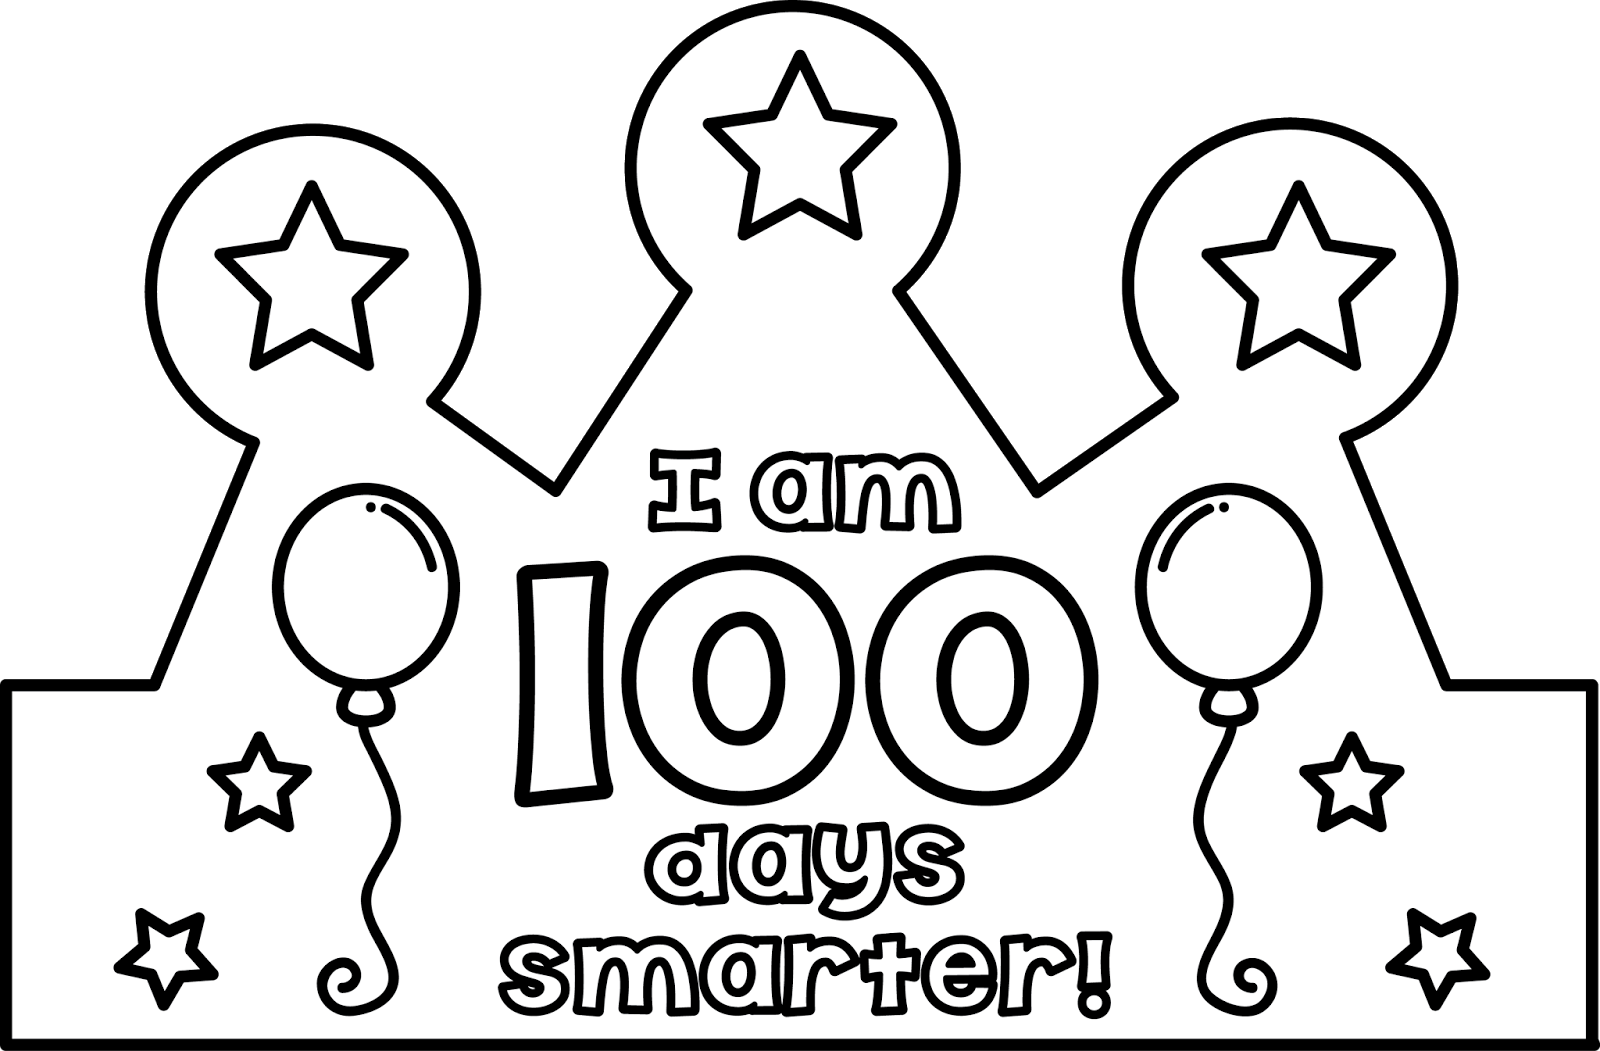 math worksheet : 1000 images about 100 days smarter on pinterest 100th ...